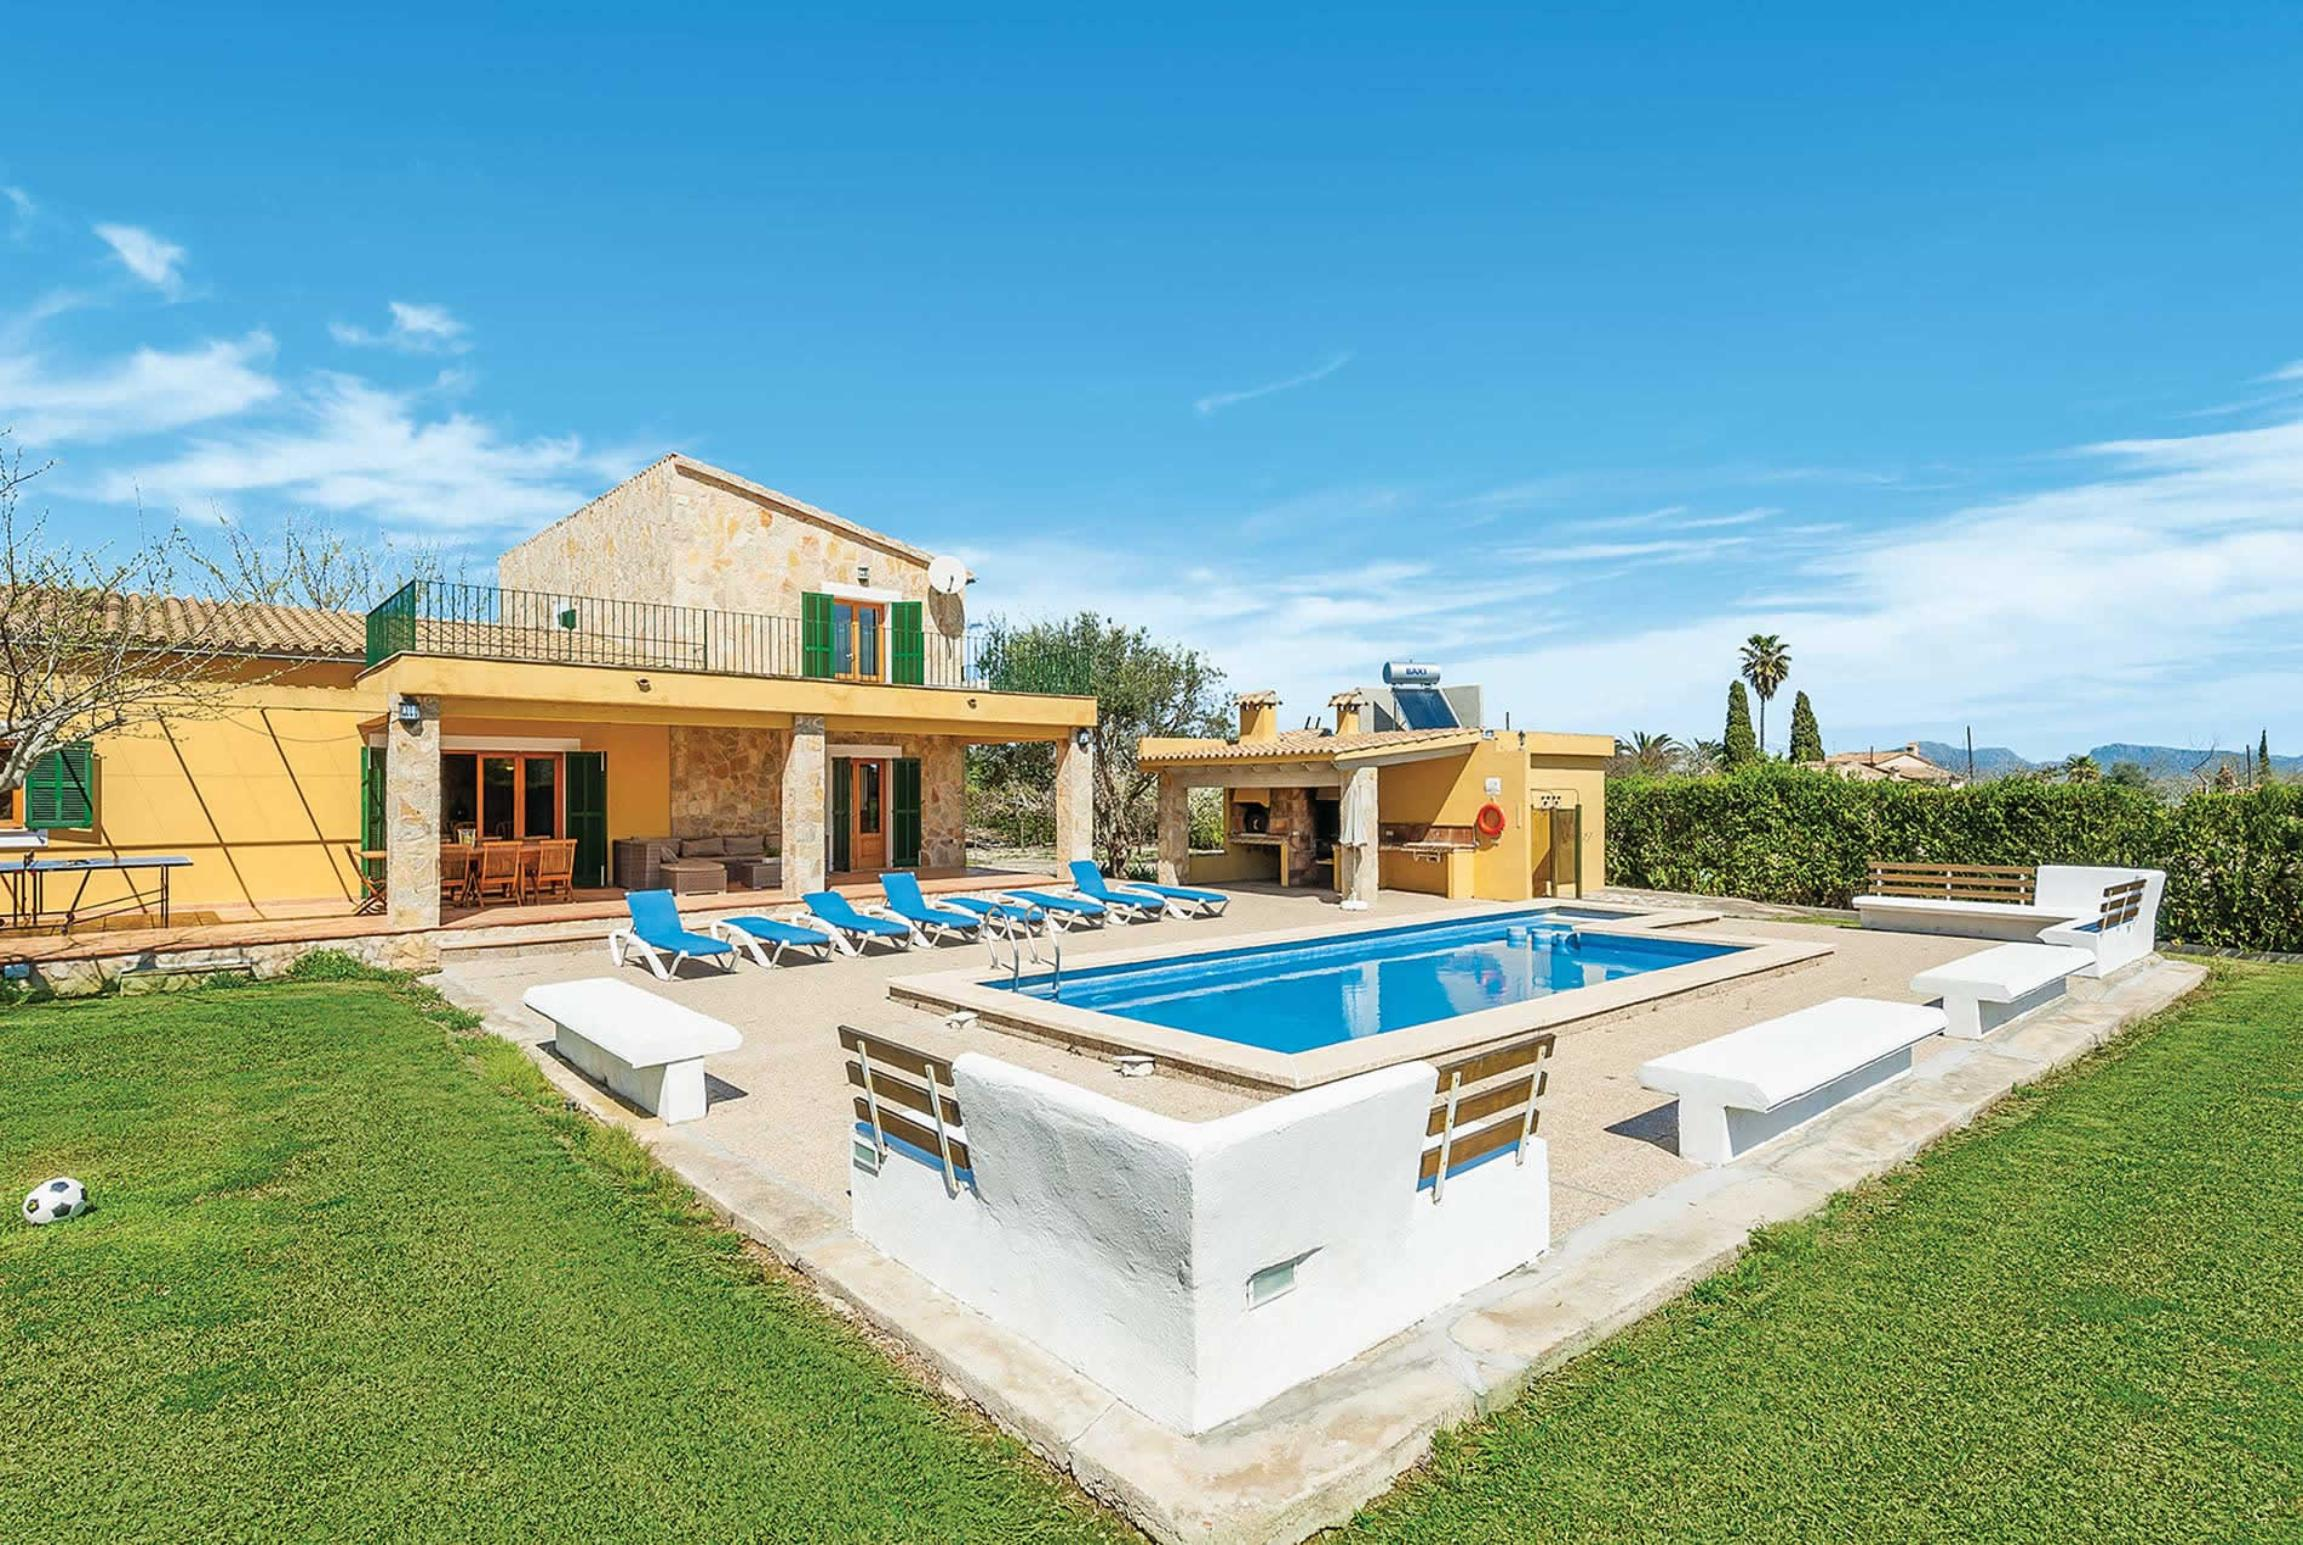 Read more about Can Gosp villa